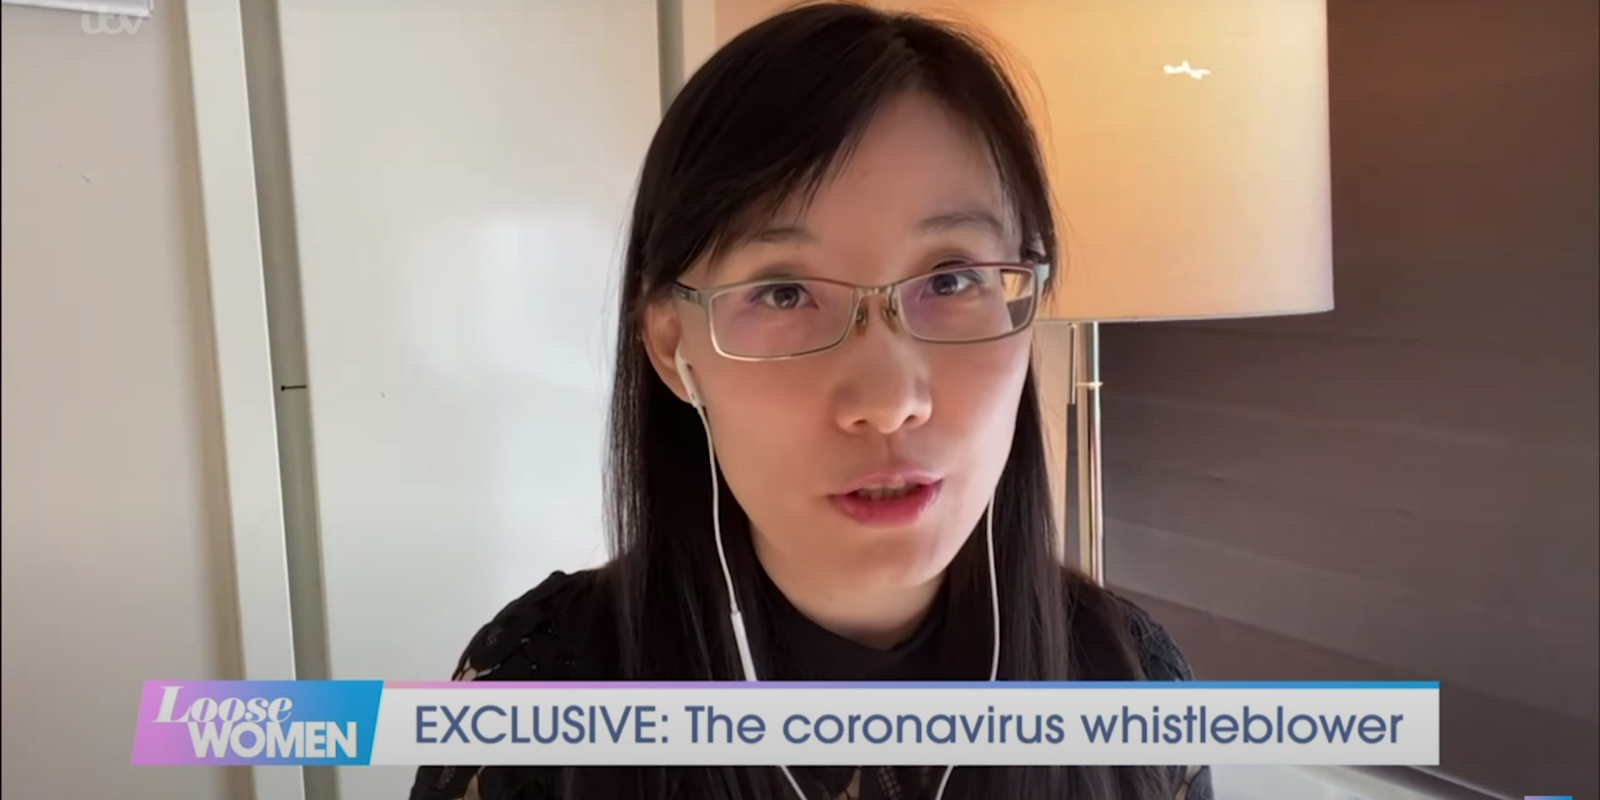 Exiled Chinese virologist claims she has proof that COVID-19 was man made in Wuhan lab